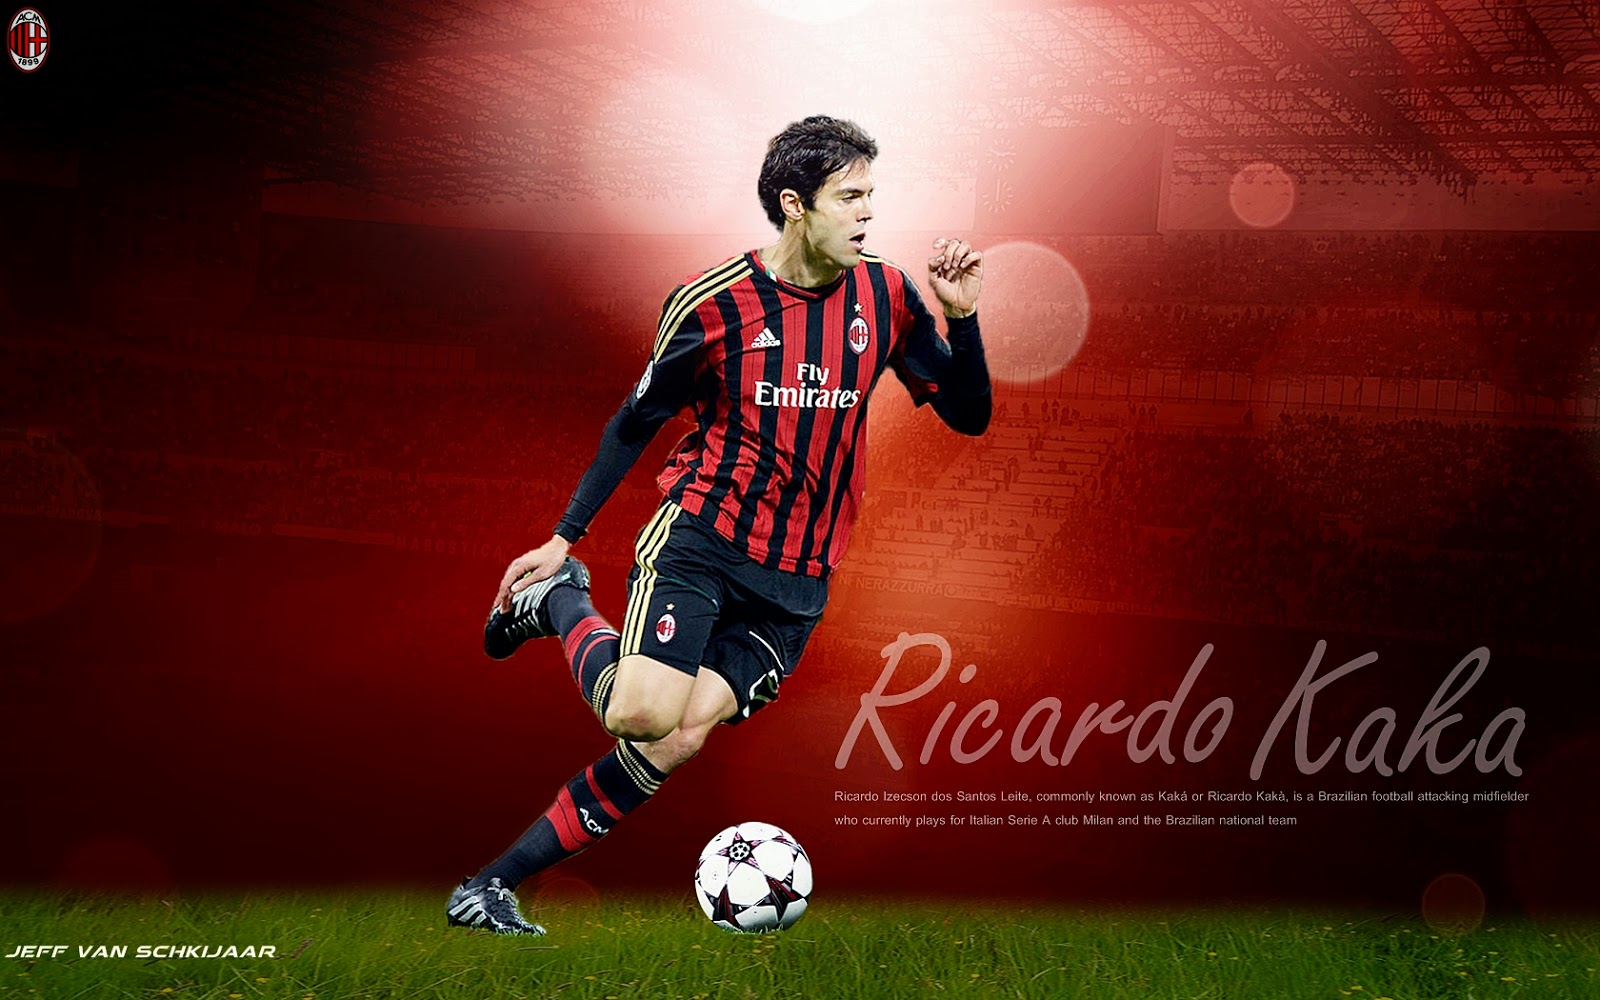 Kaka Wallpapers and Background Images   stmednet 1600x1000